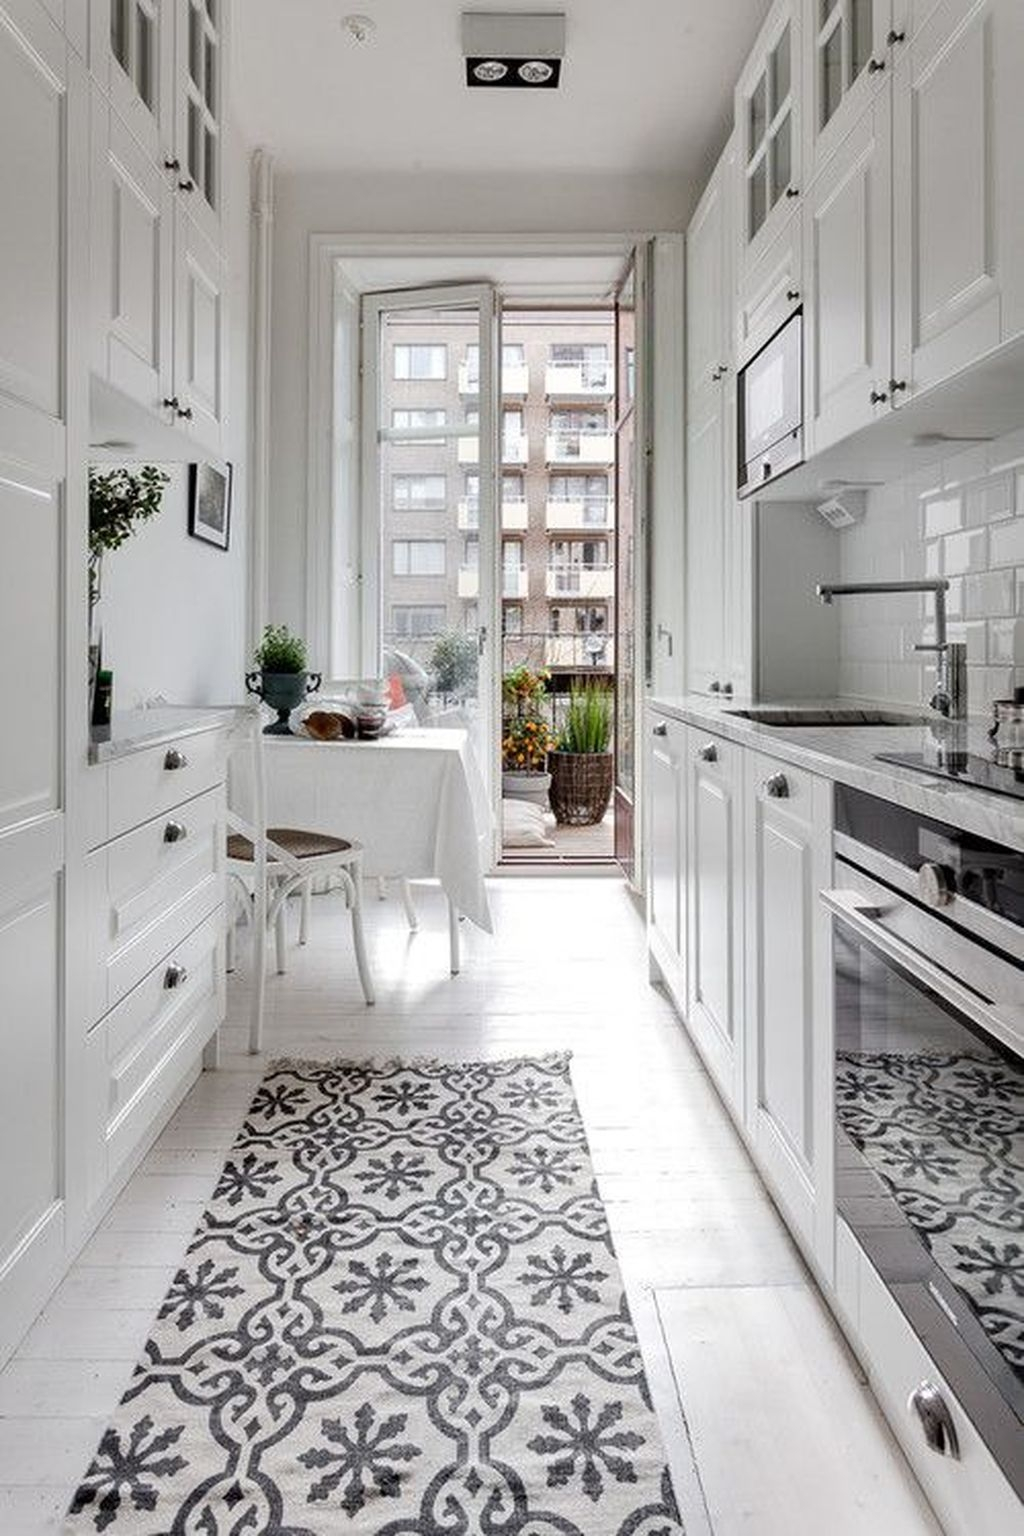 small galley kitchen in an apartment with bright white finishes, with personality added by a patterned black and white runner rug